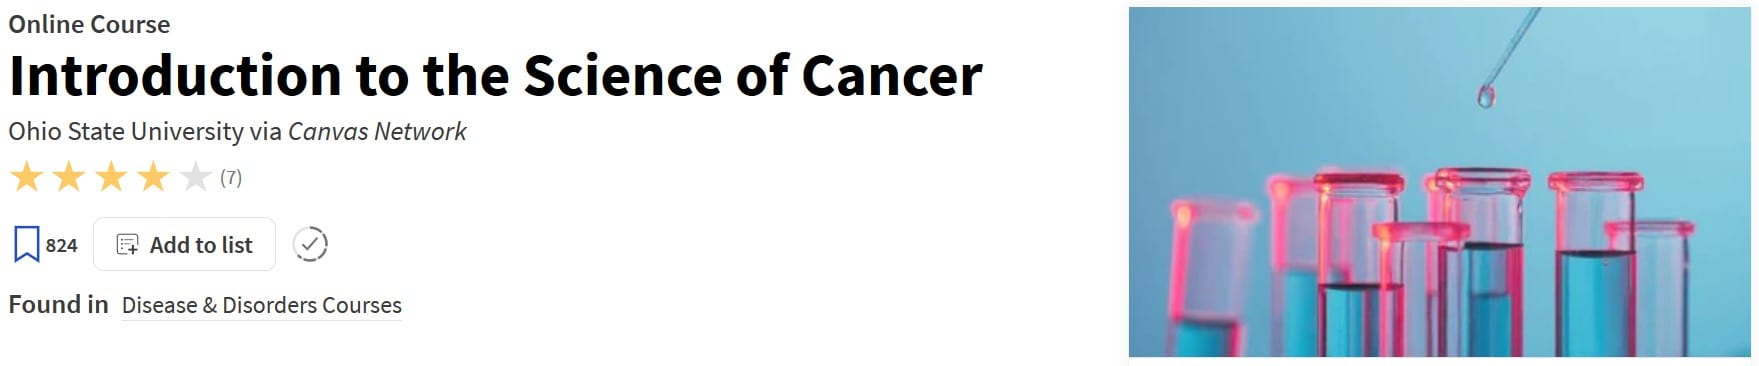 Introduction to the Science of Cancer